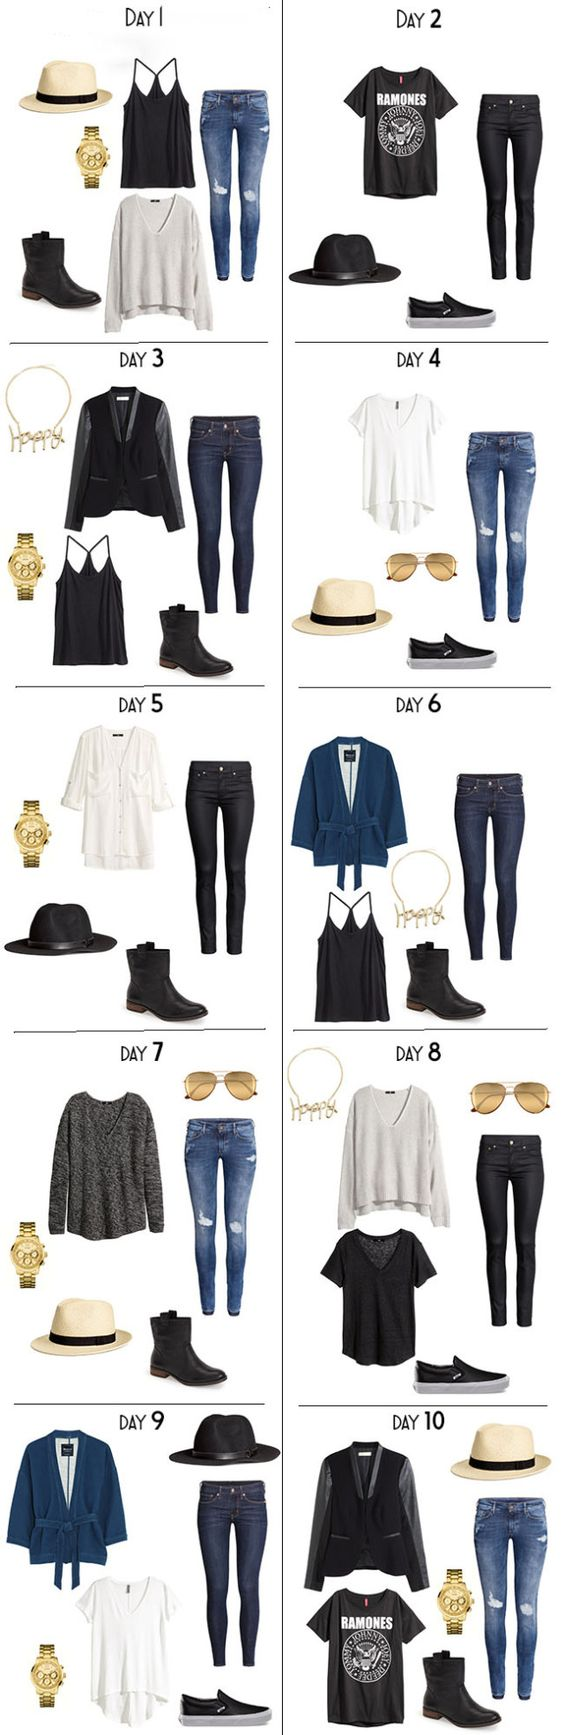 Packing List for Europe – [20 Amazing Outfits] in just one Carry On!